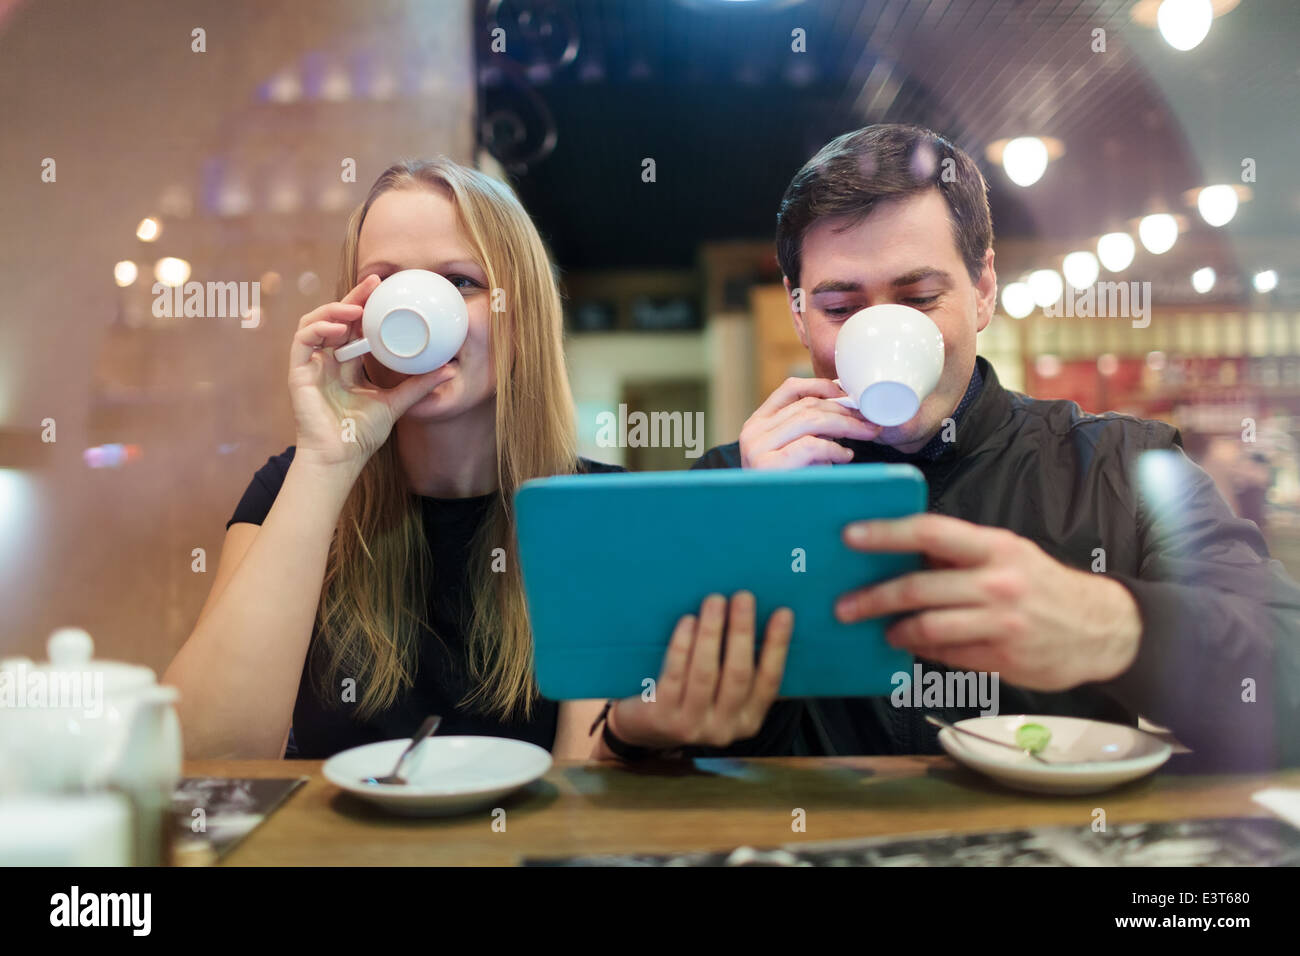 Man and woman drinking coffee - Stock Image